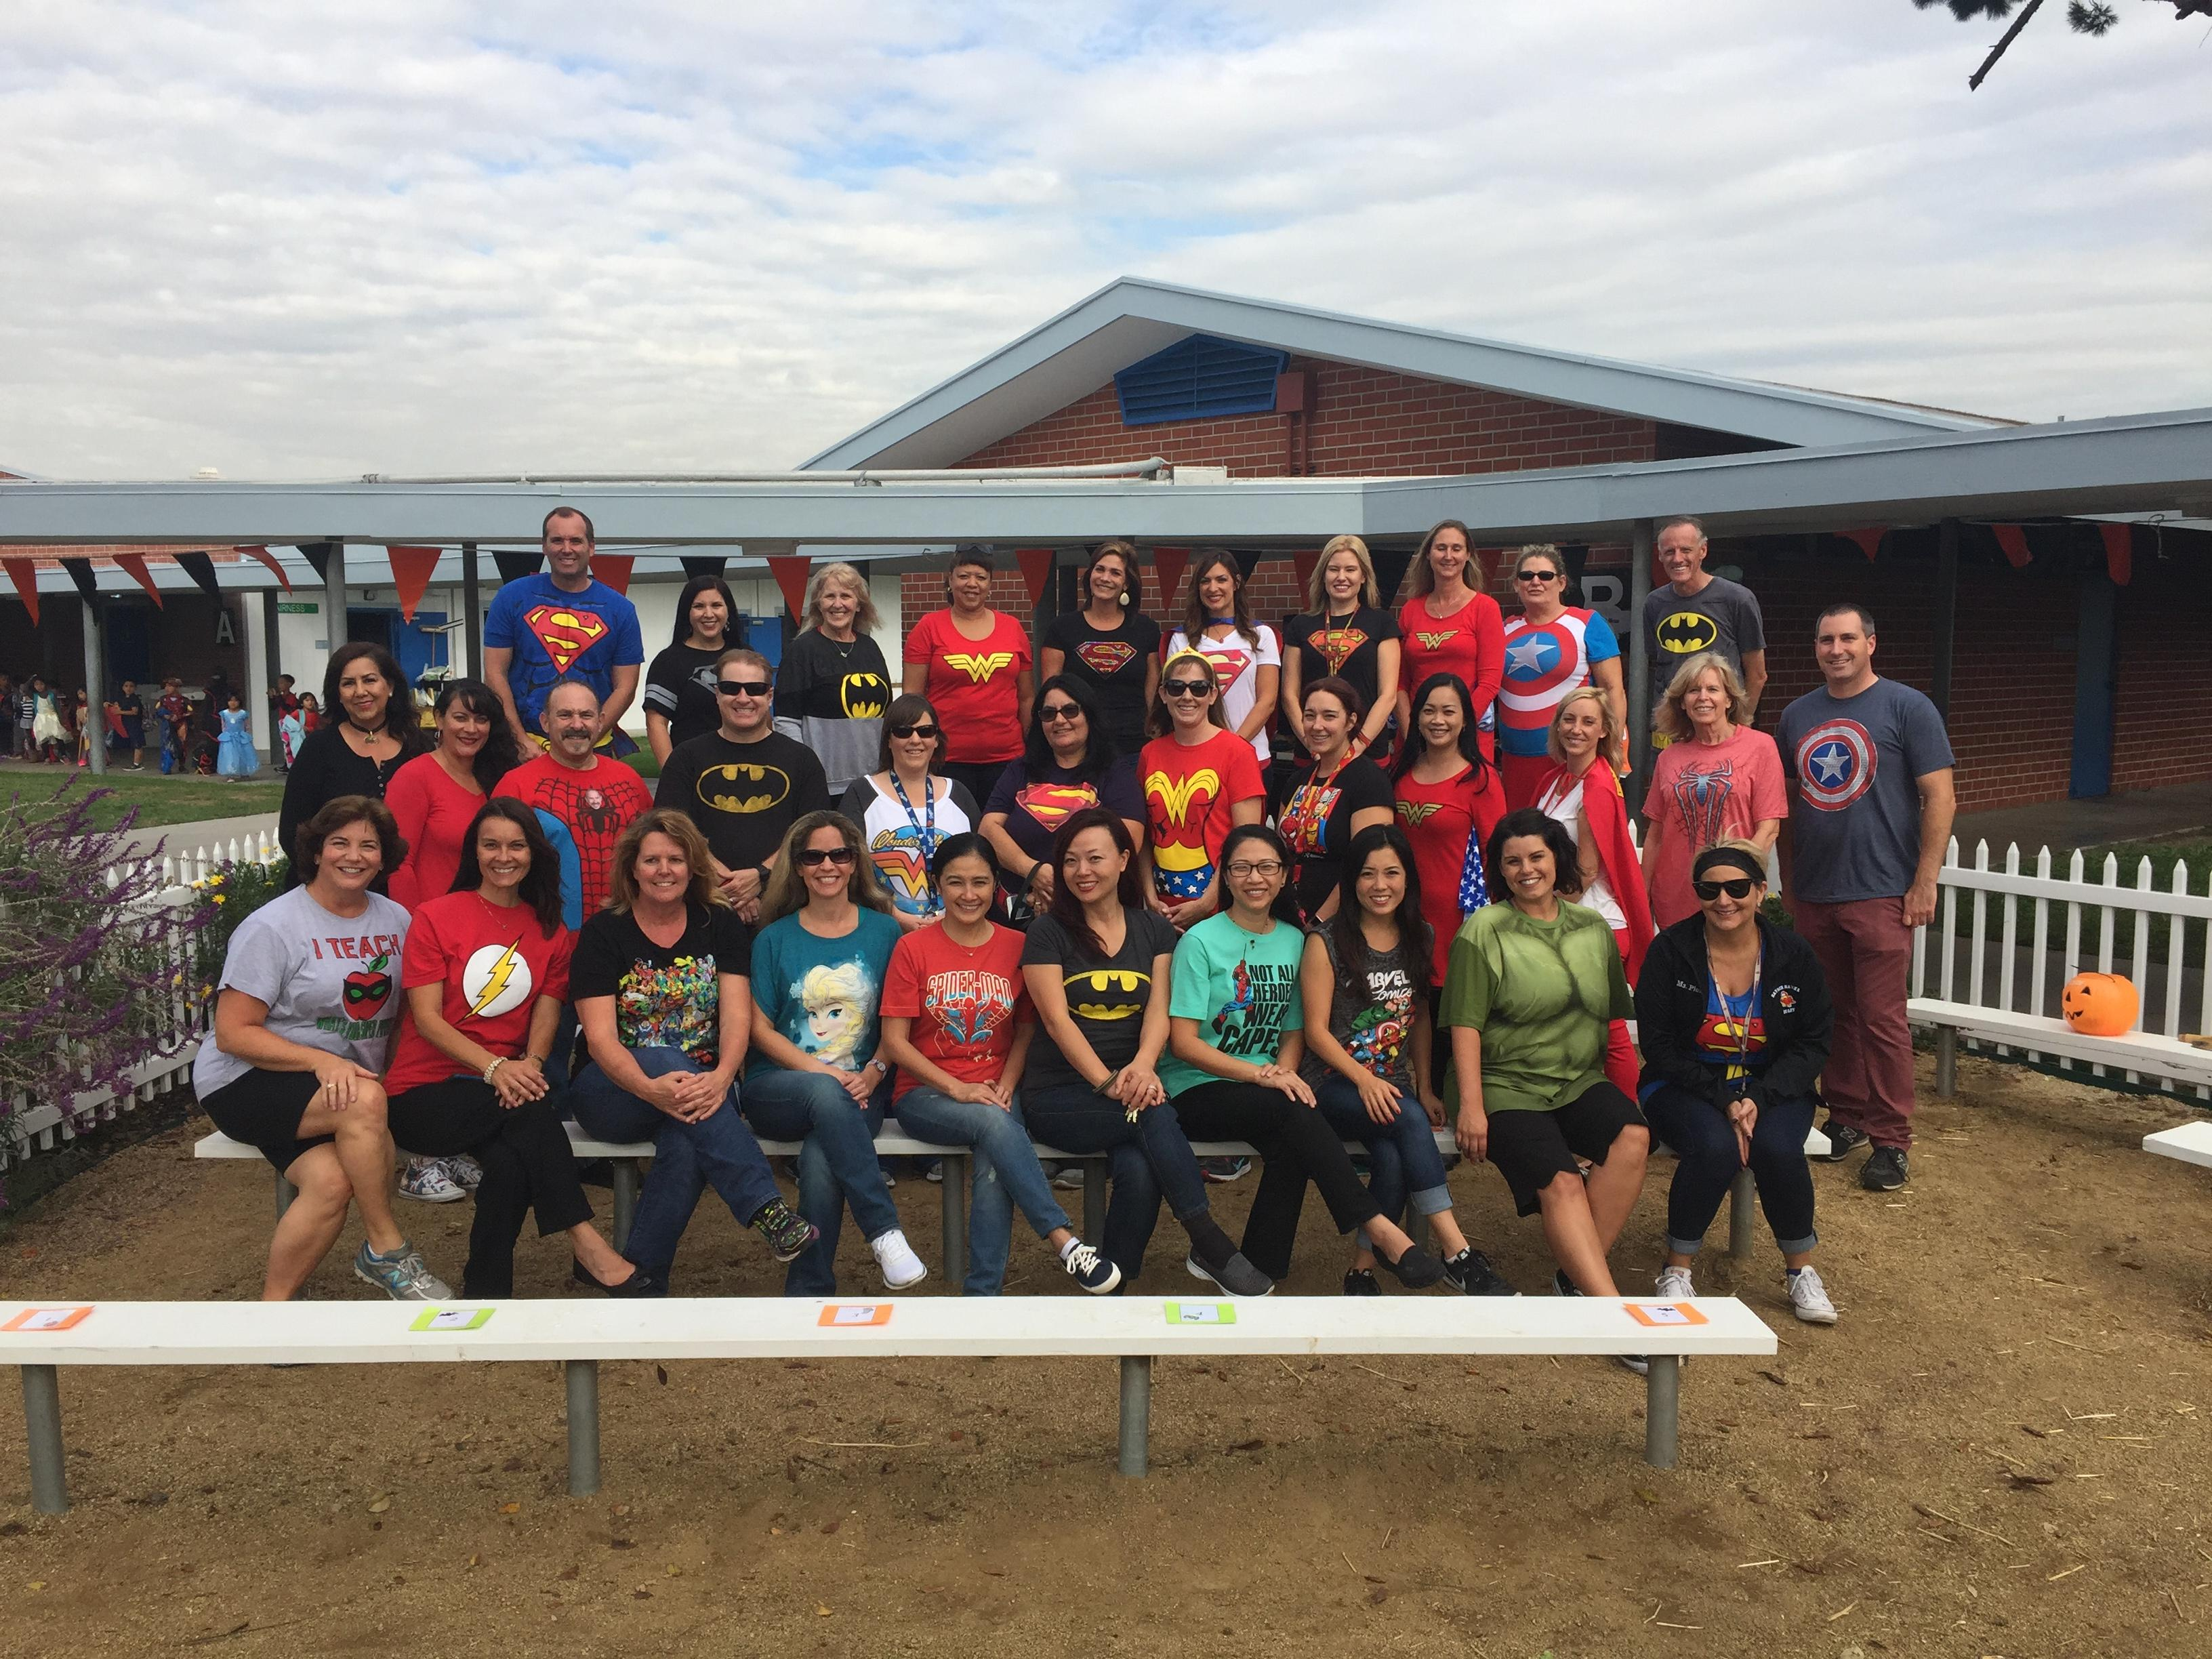 The Hayden staff wearing super hero shirts, posing in the reading garden.